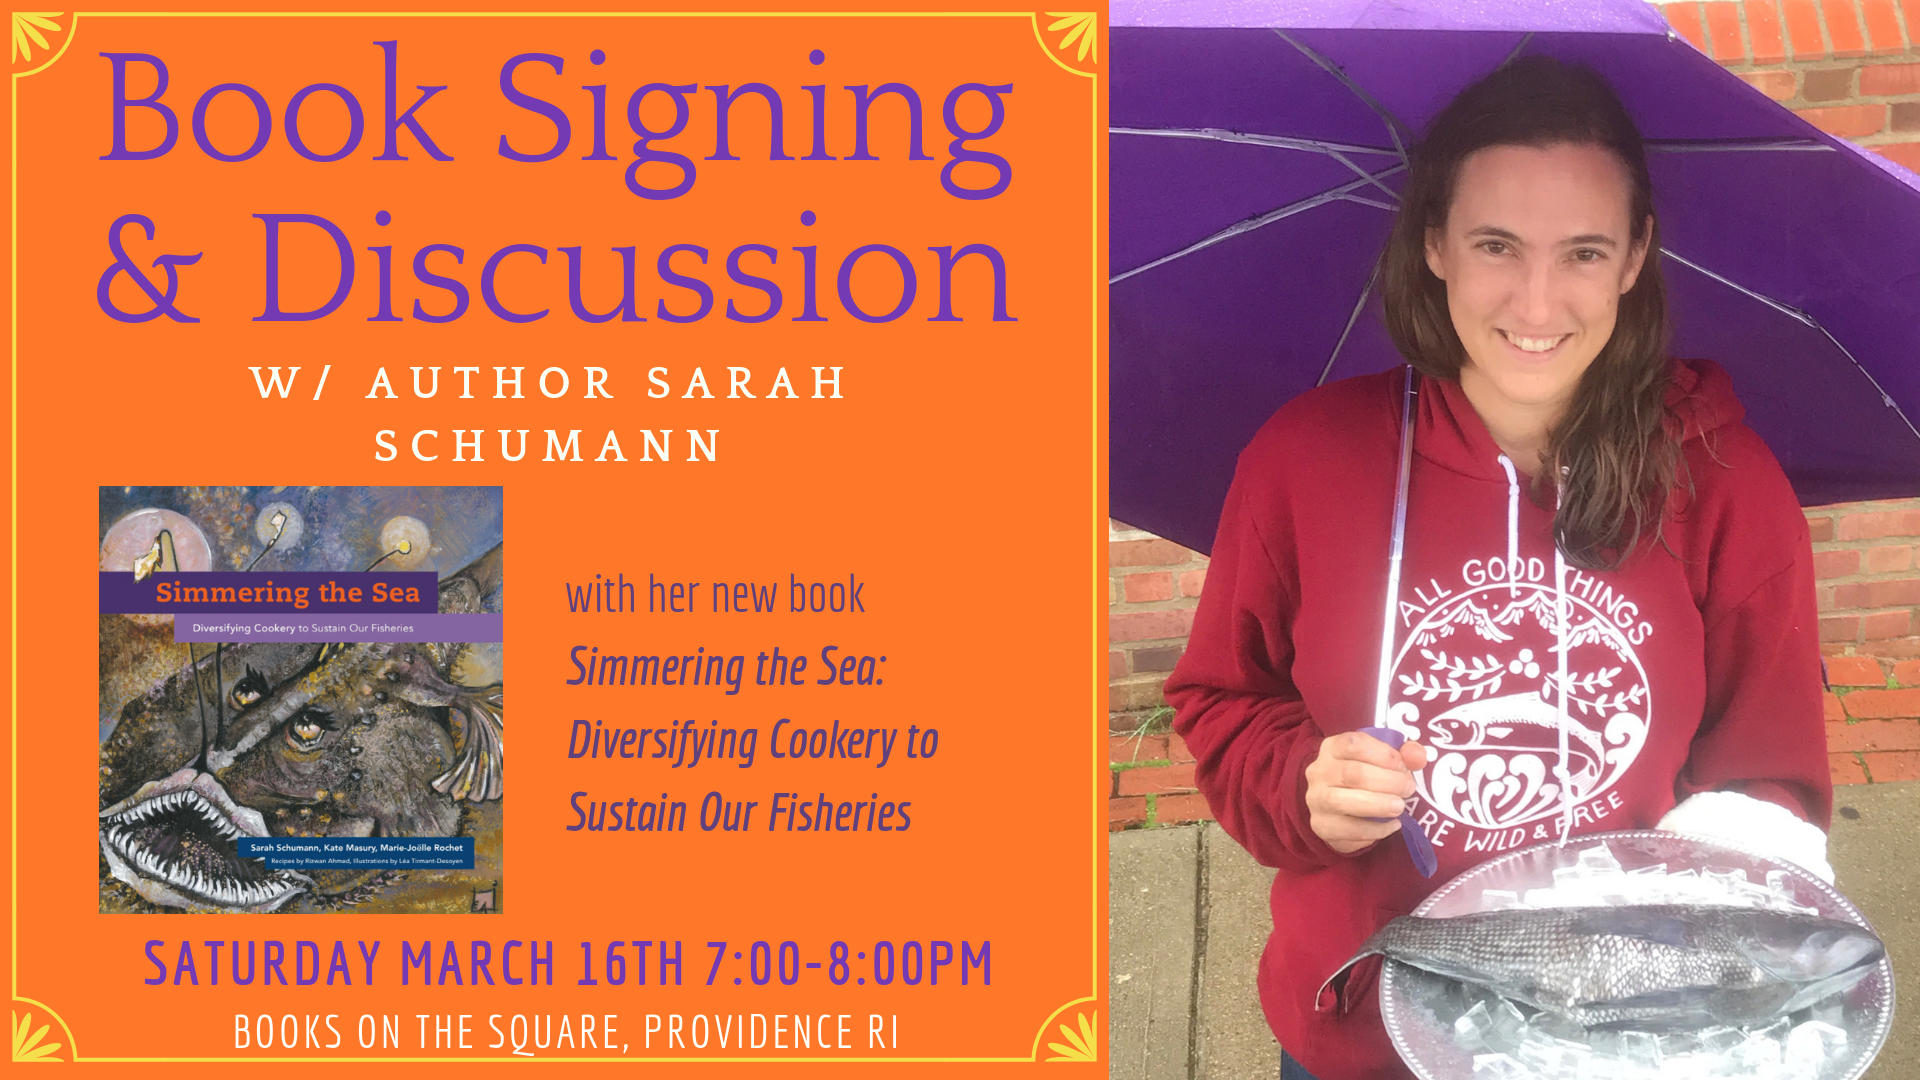 Book Signing and Discussion with Author Sarah Schumann